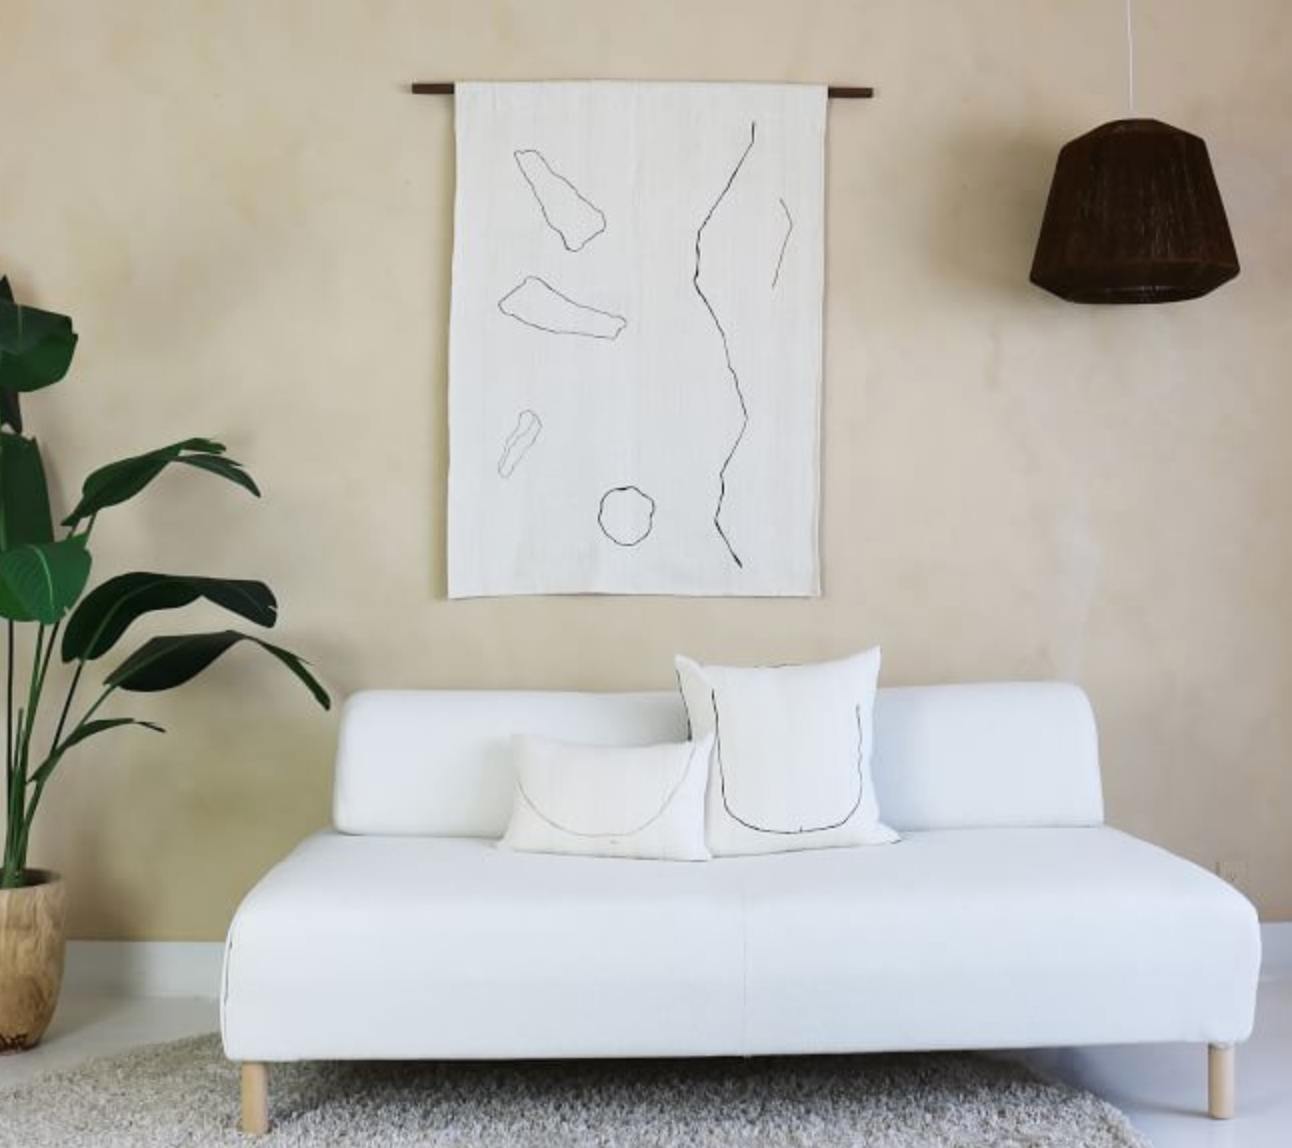 white couch with art above and houseplant next to it in apartment